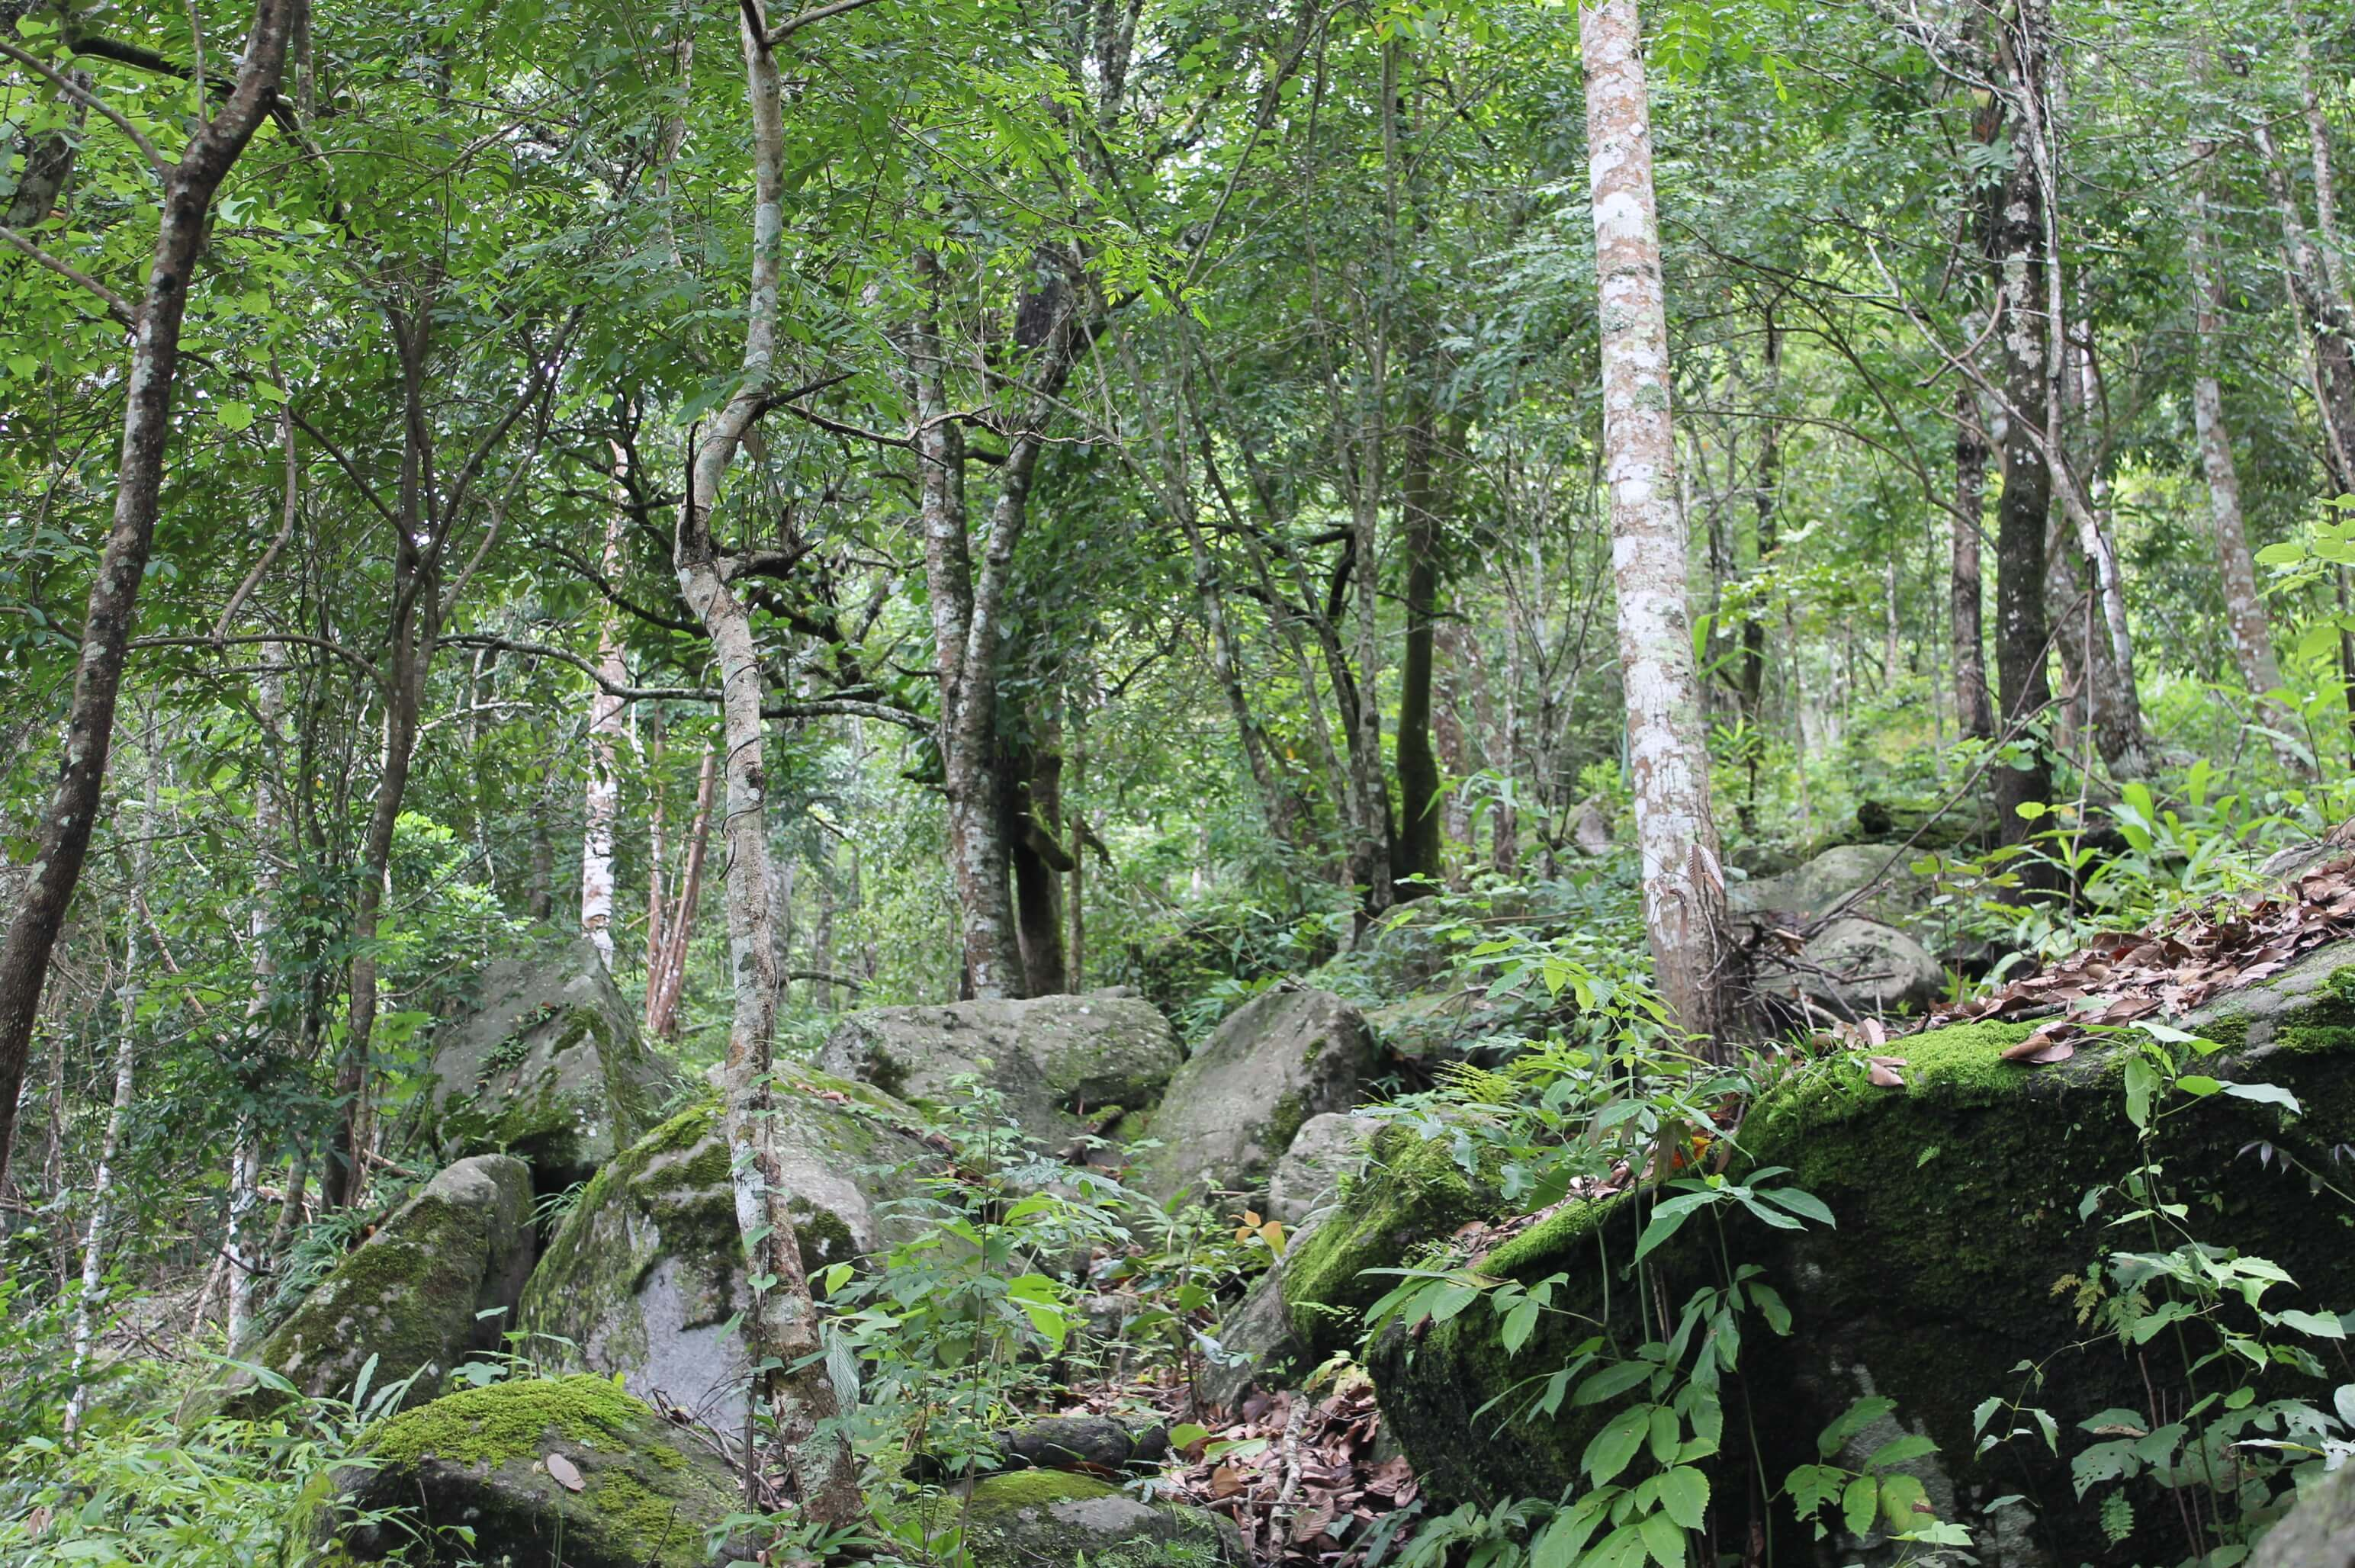 Pha Daeng National Park rain forest